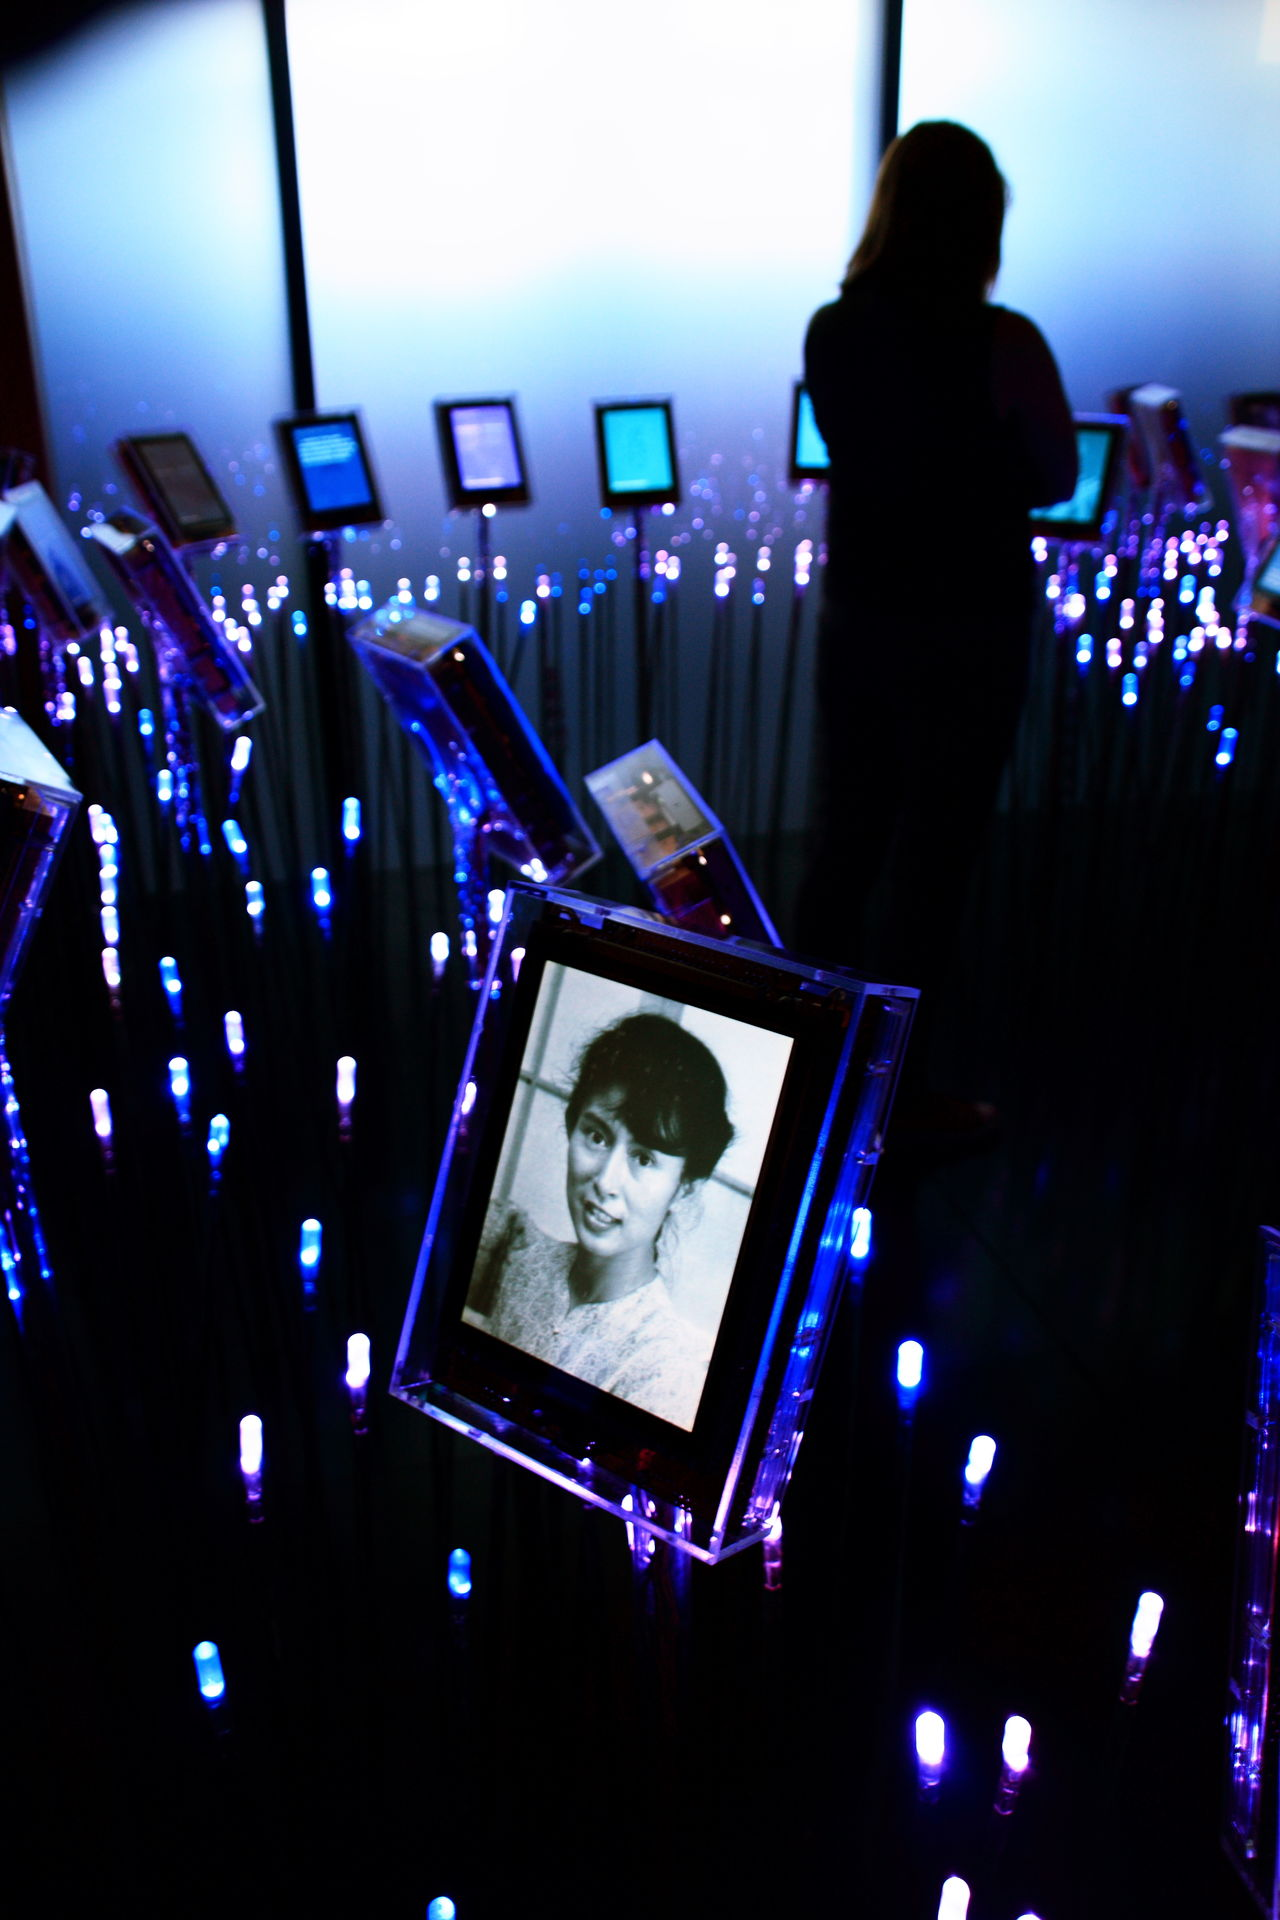 All The Neon Lights Neon Nobel Peace Prize Nobel Prize Oslo Portrait Portrait Of A Woman Silhouette